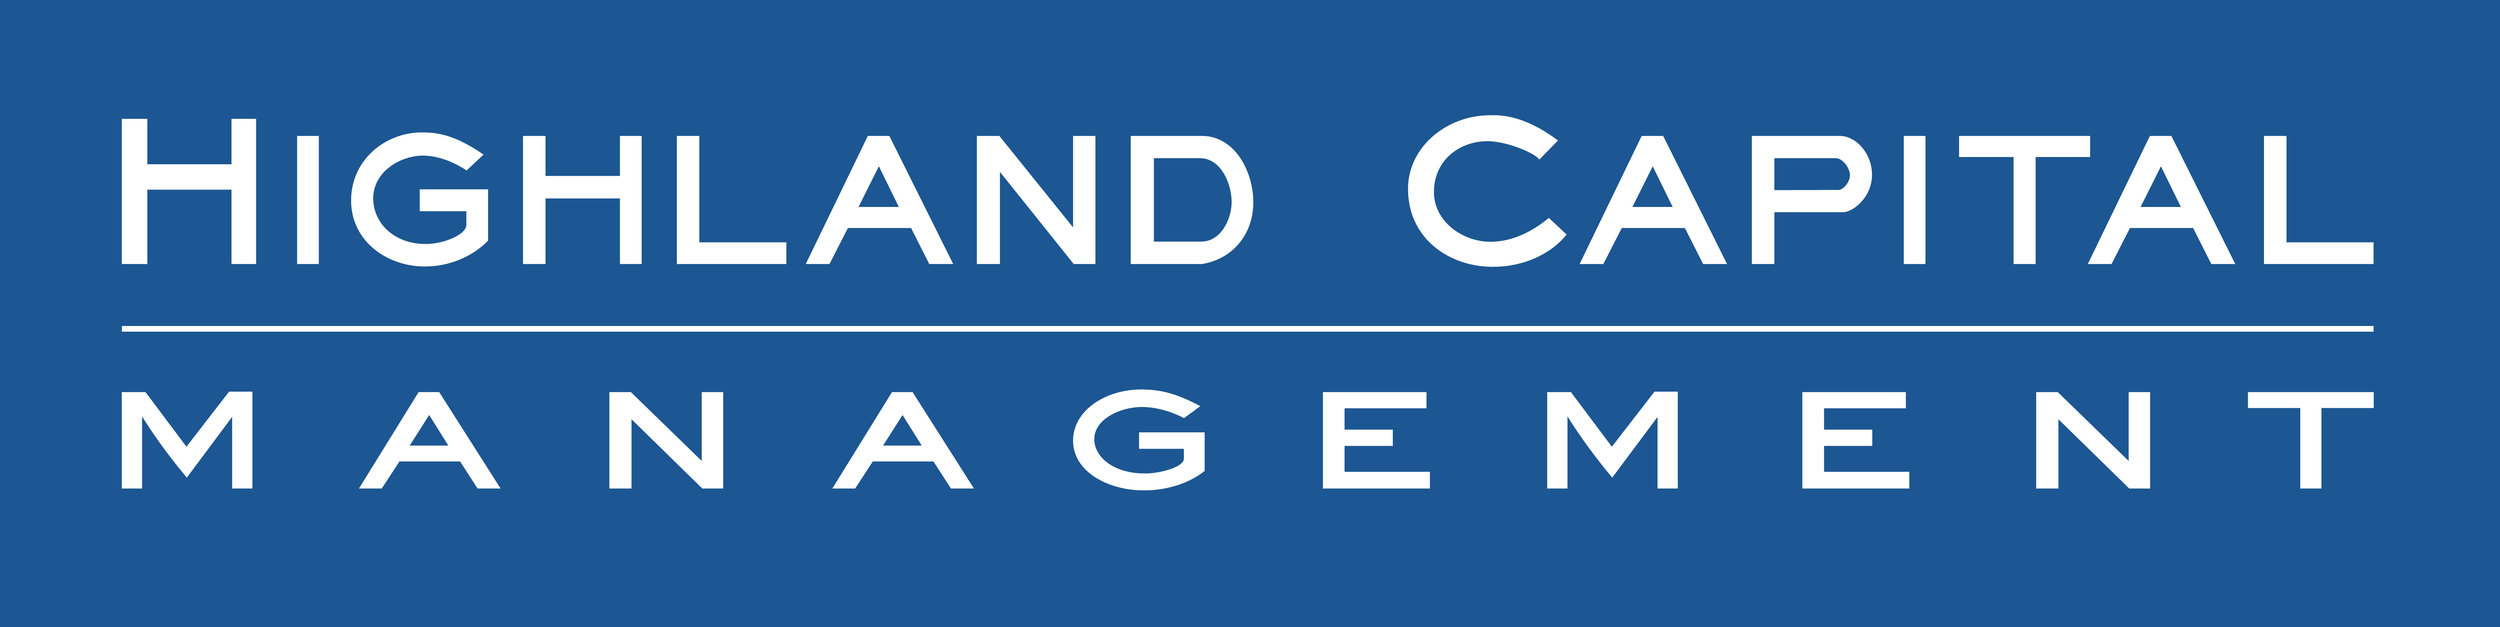 Highland Capital Management Logo 1200 ($5K).jpg